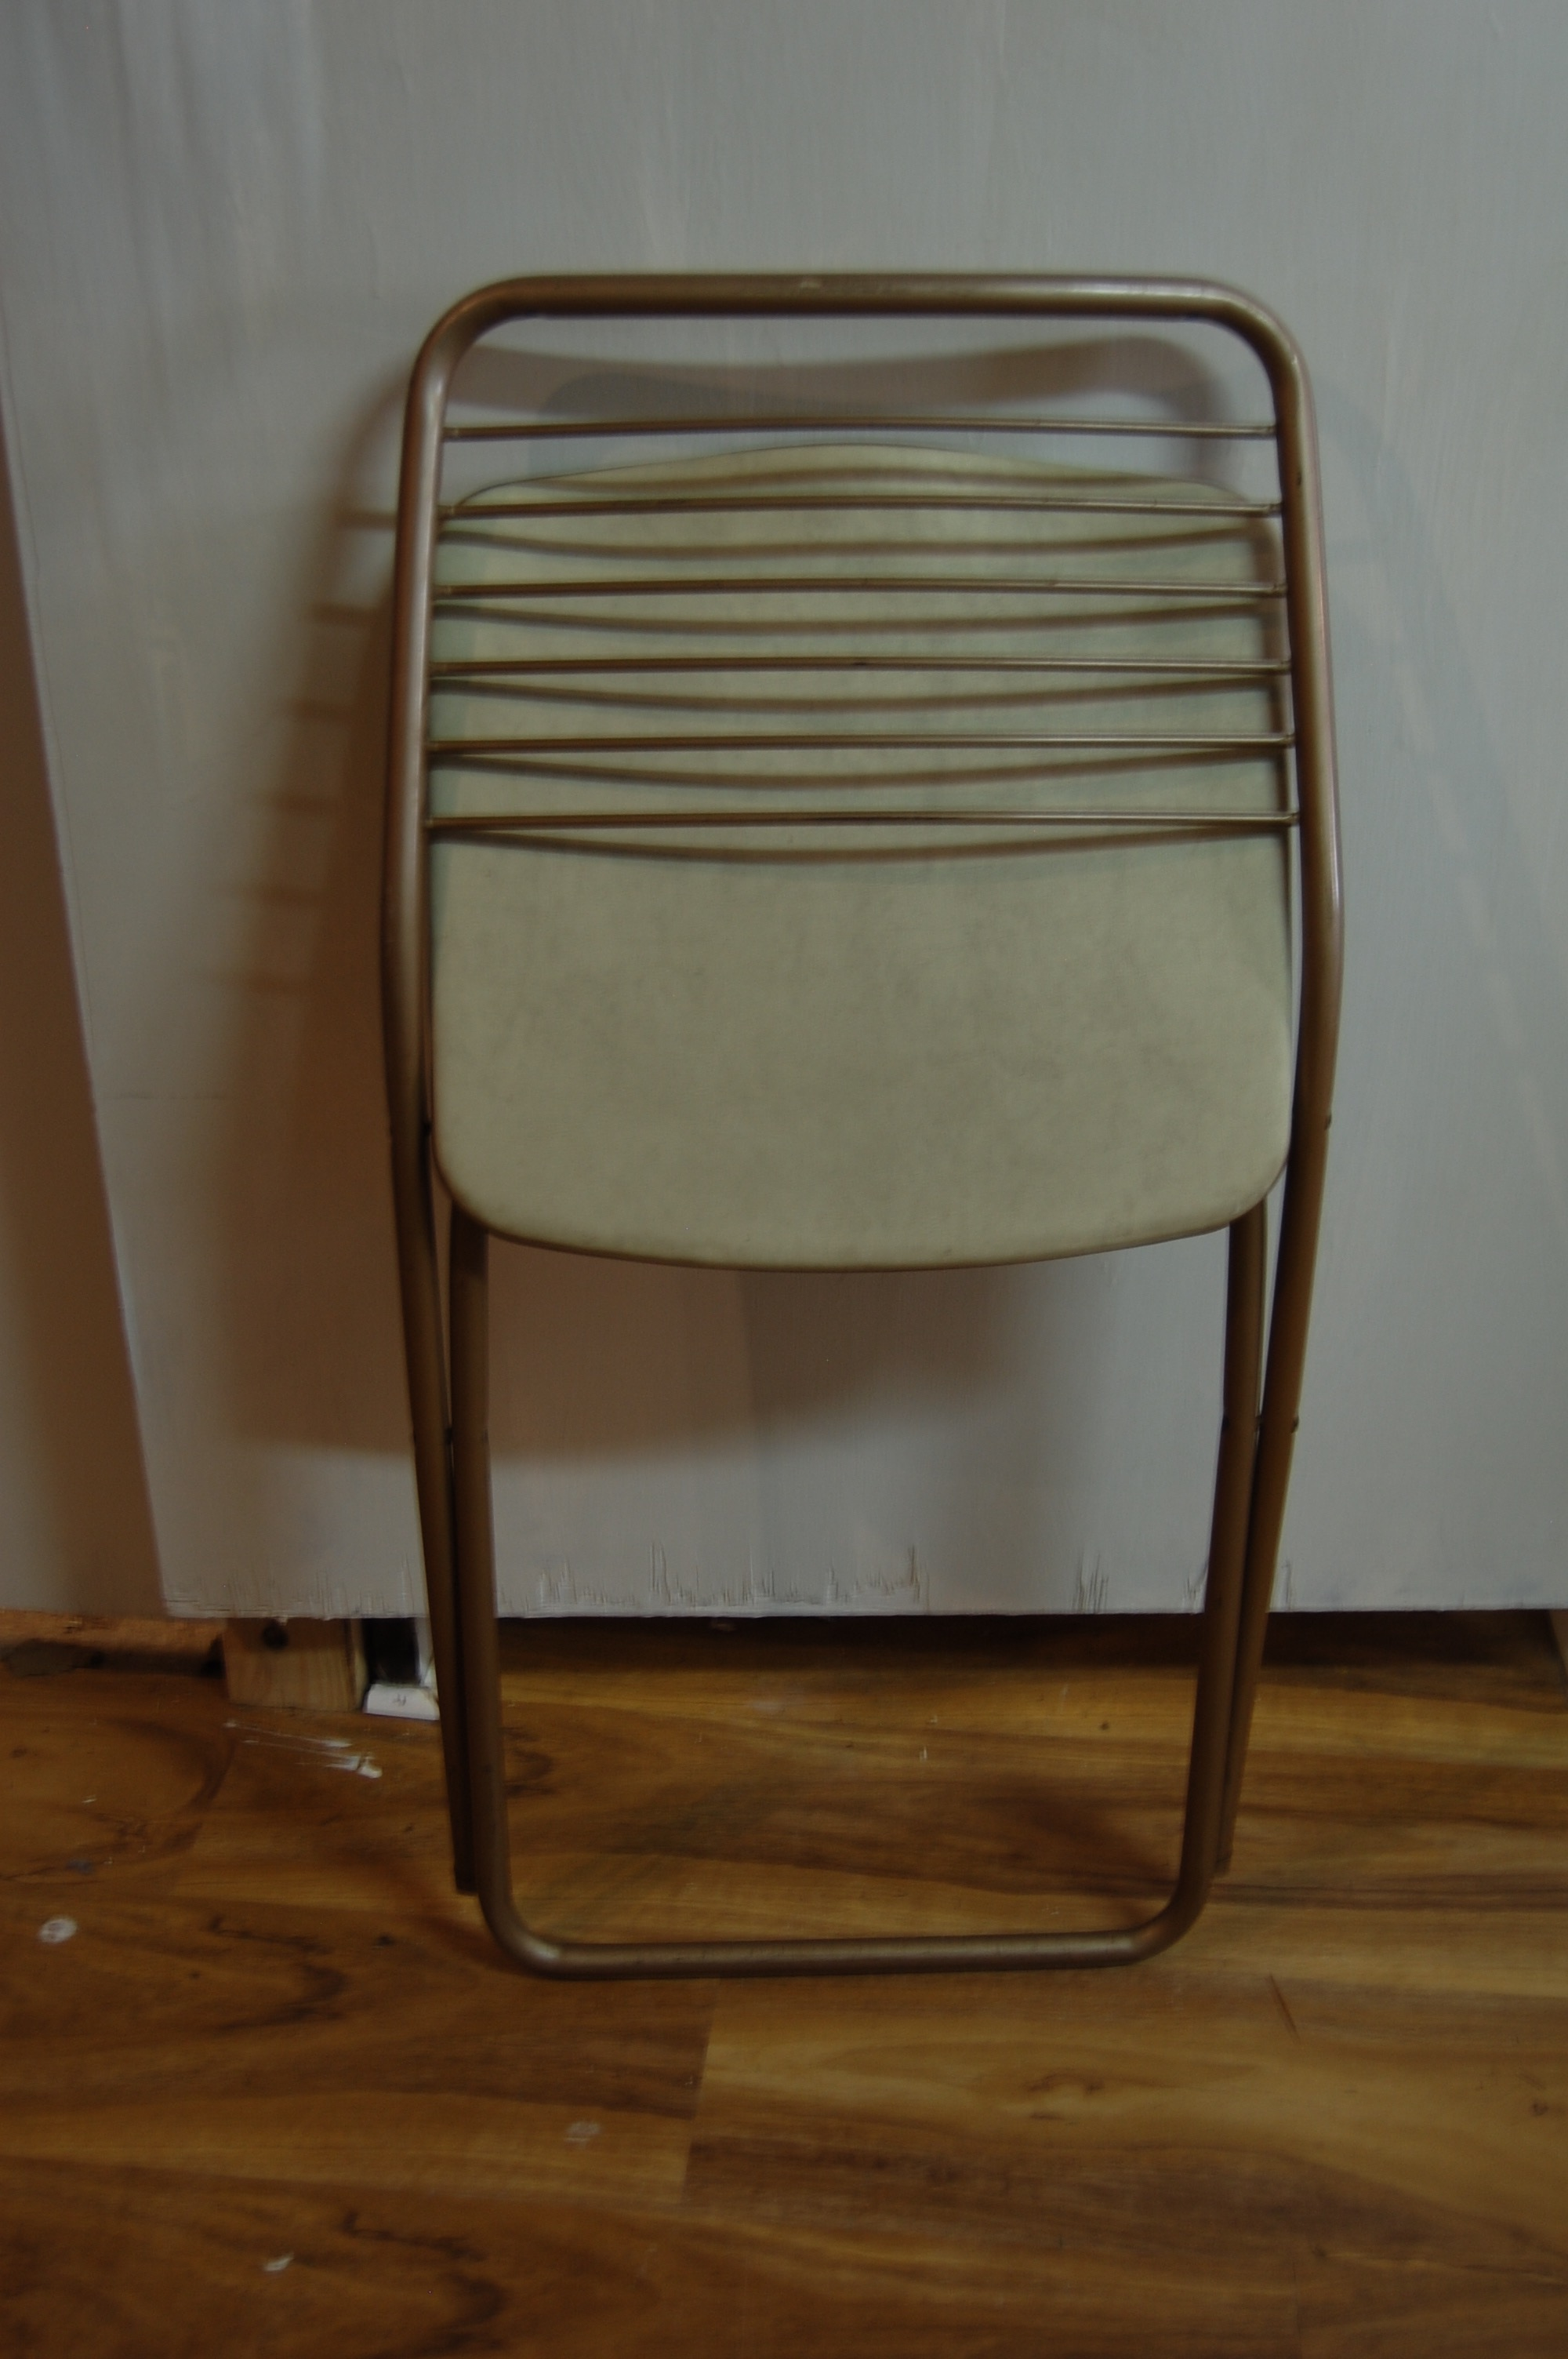 Brown Vintage Stylaire Metal Folding Chairs - 4 For Sale - Image 8 of 9  sc 1 st  Chairish & Vintage Stylaire Metal Folding Chairs - 4 | Chairish